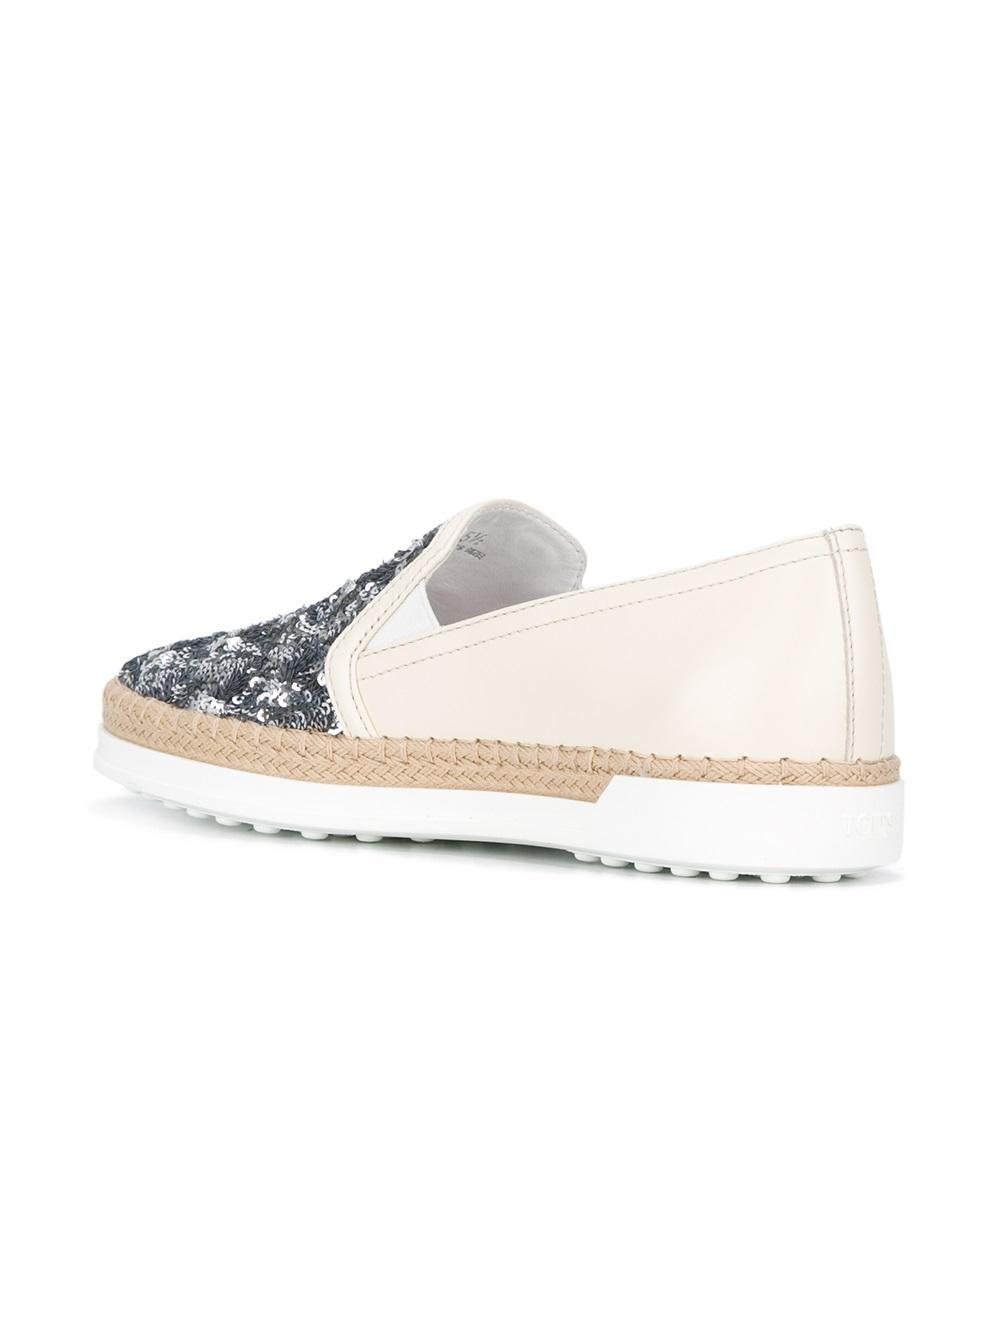 Tod's Leather Sequin Embellished Sneakers in White